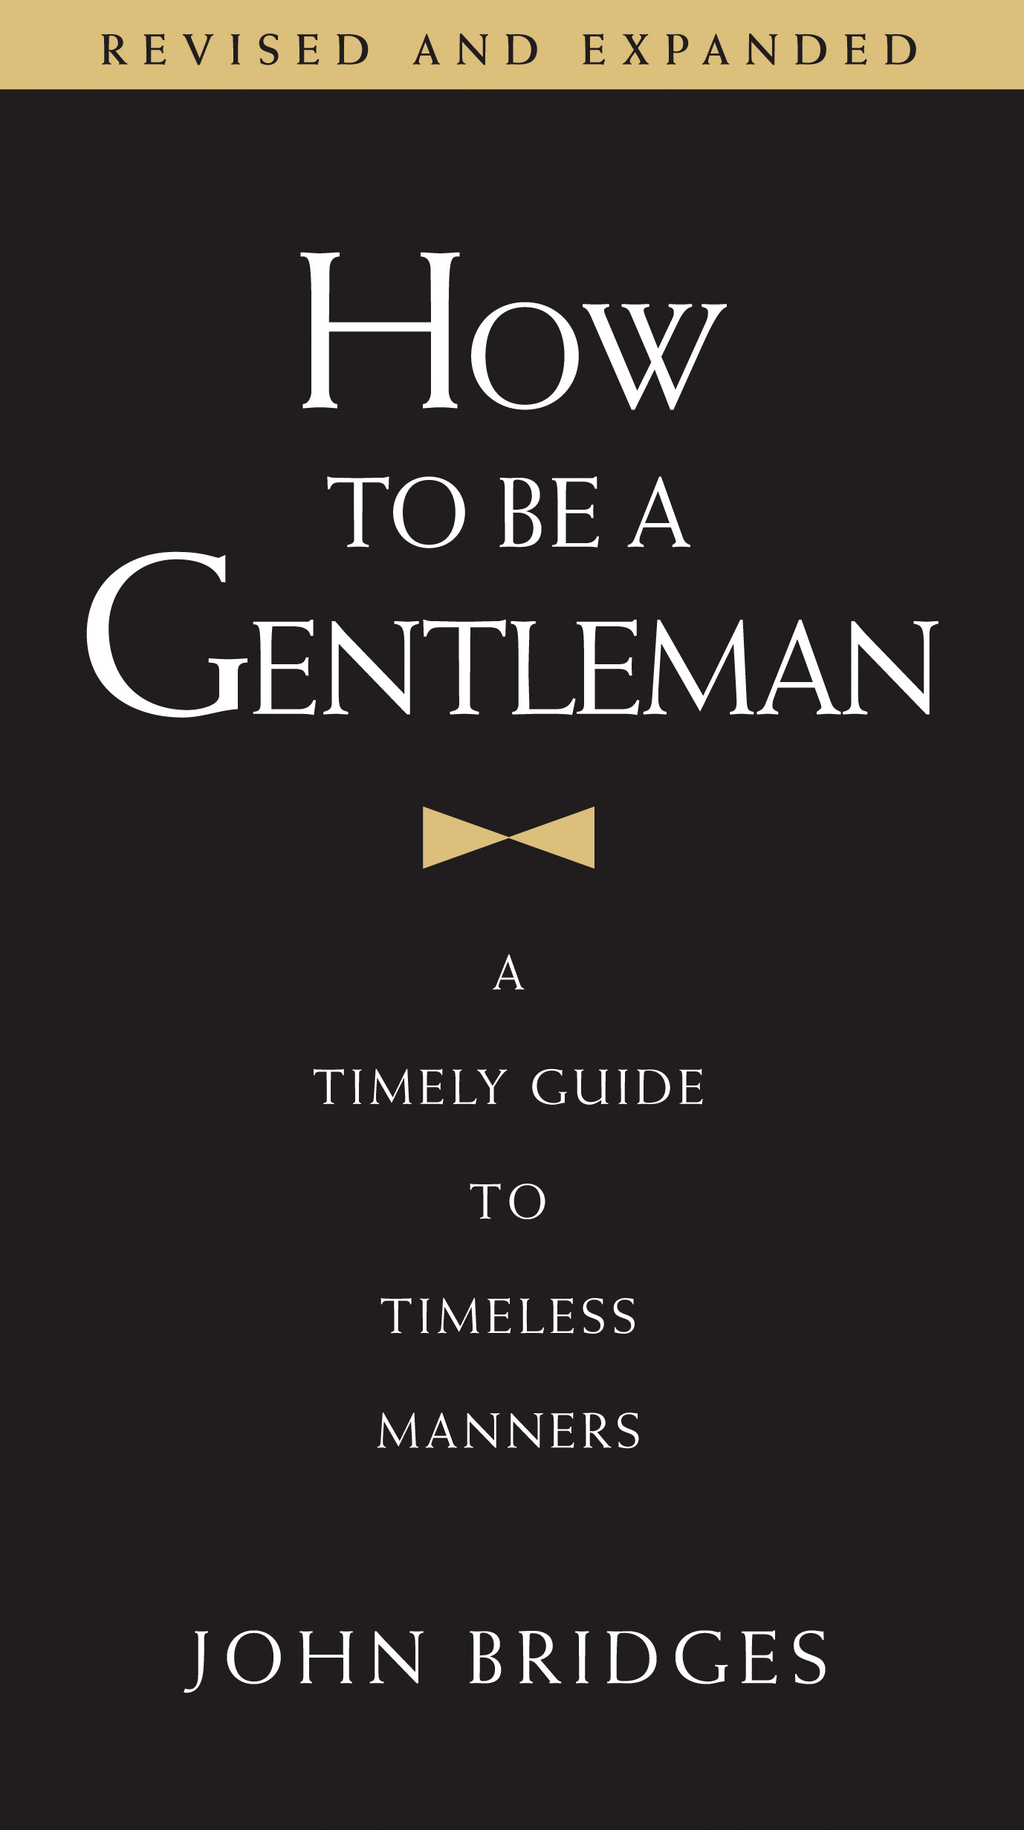 How To Be a Gentleman By: John Bridges